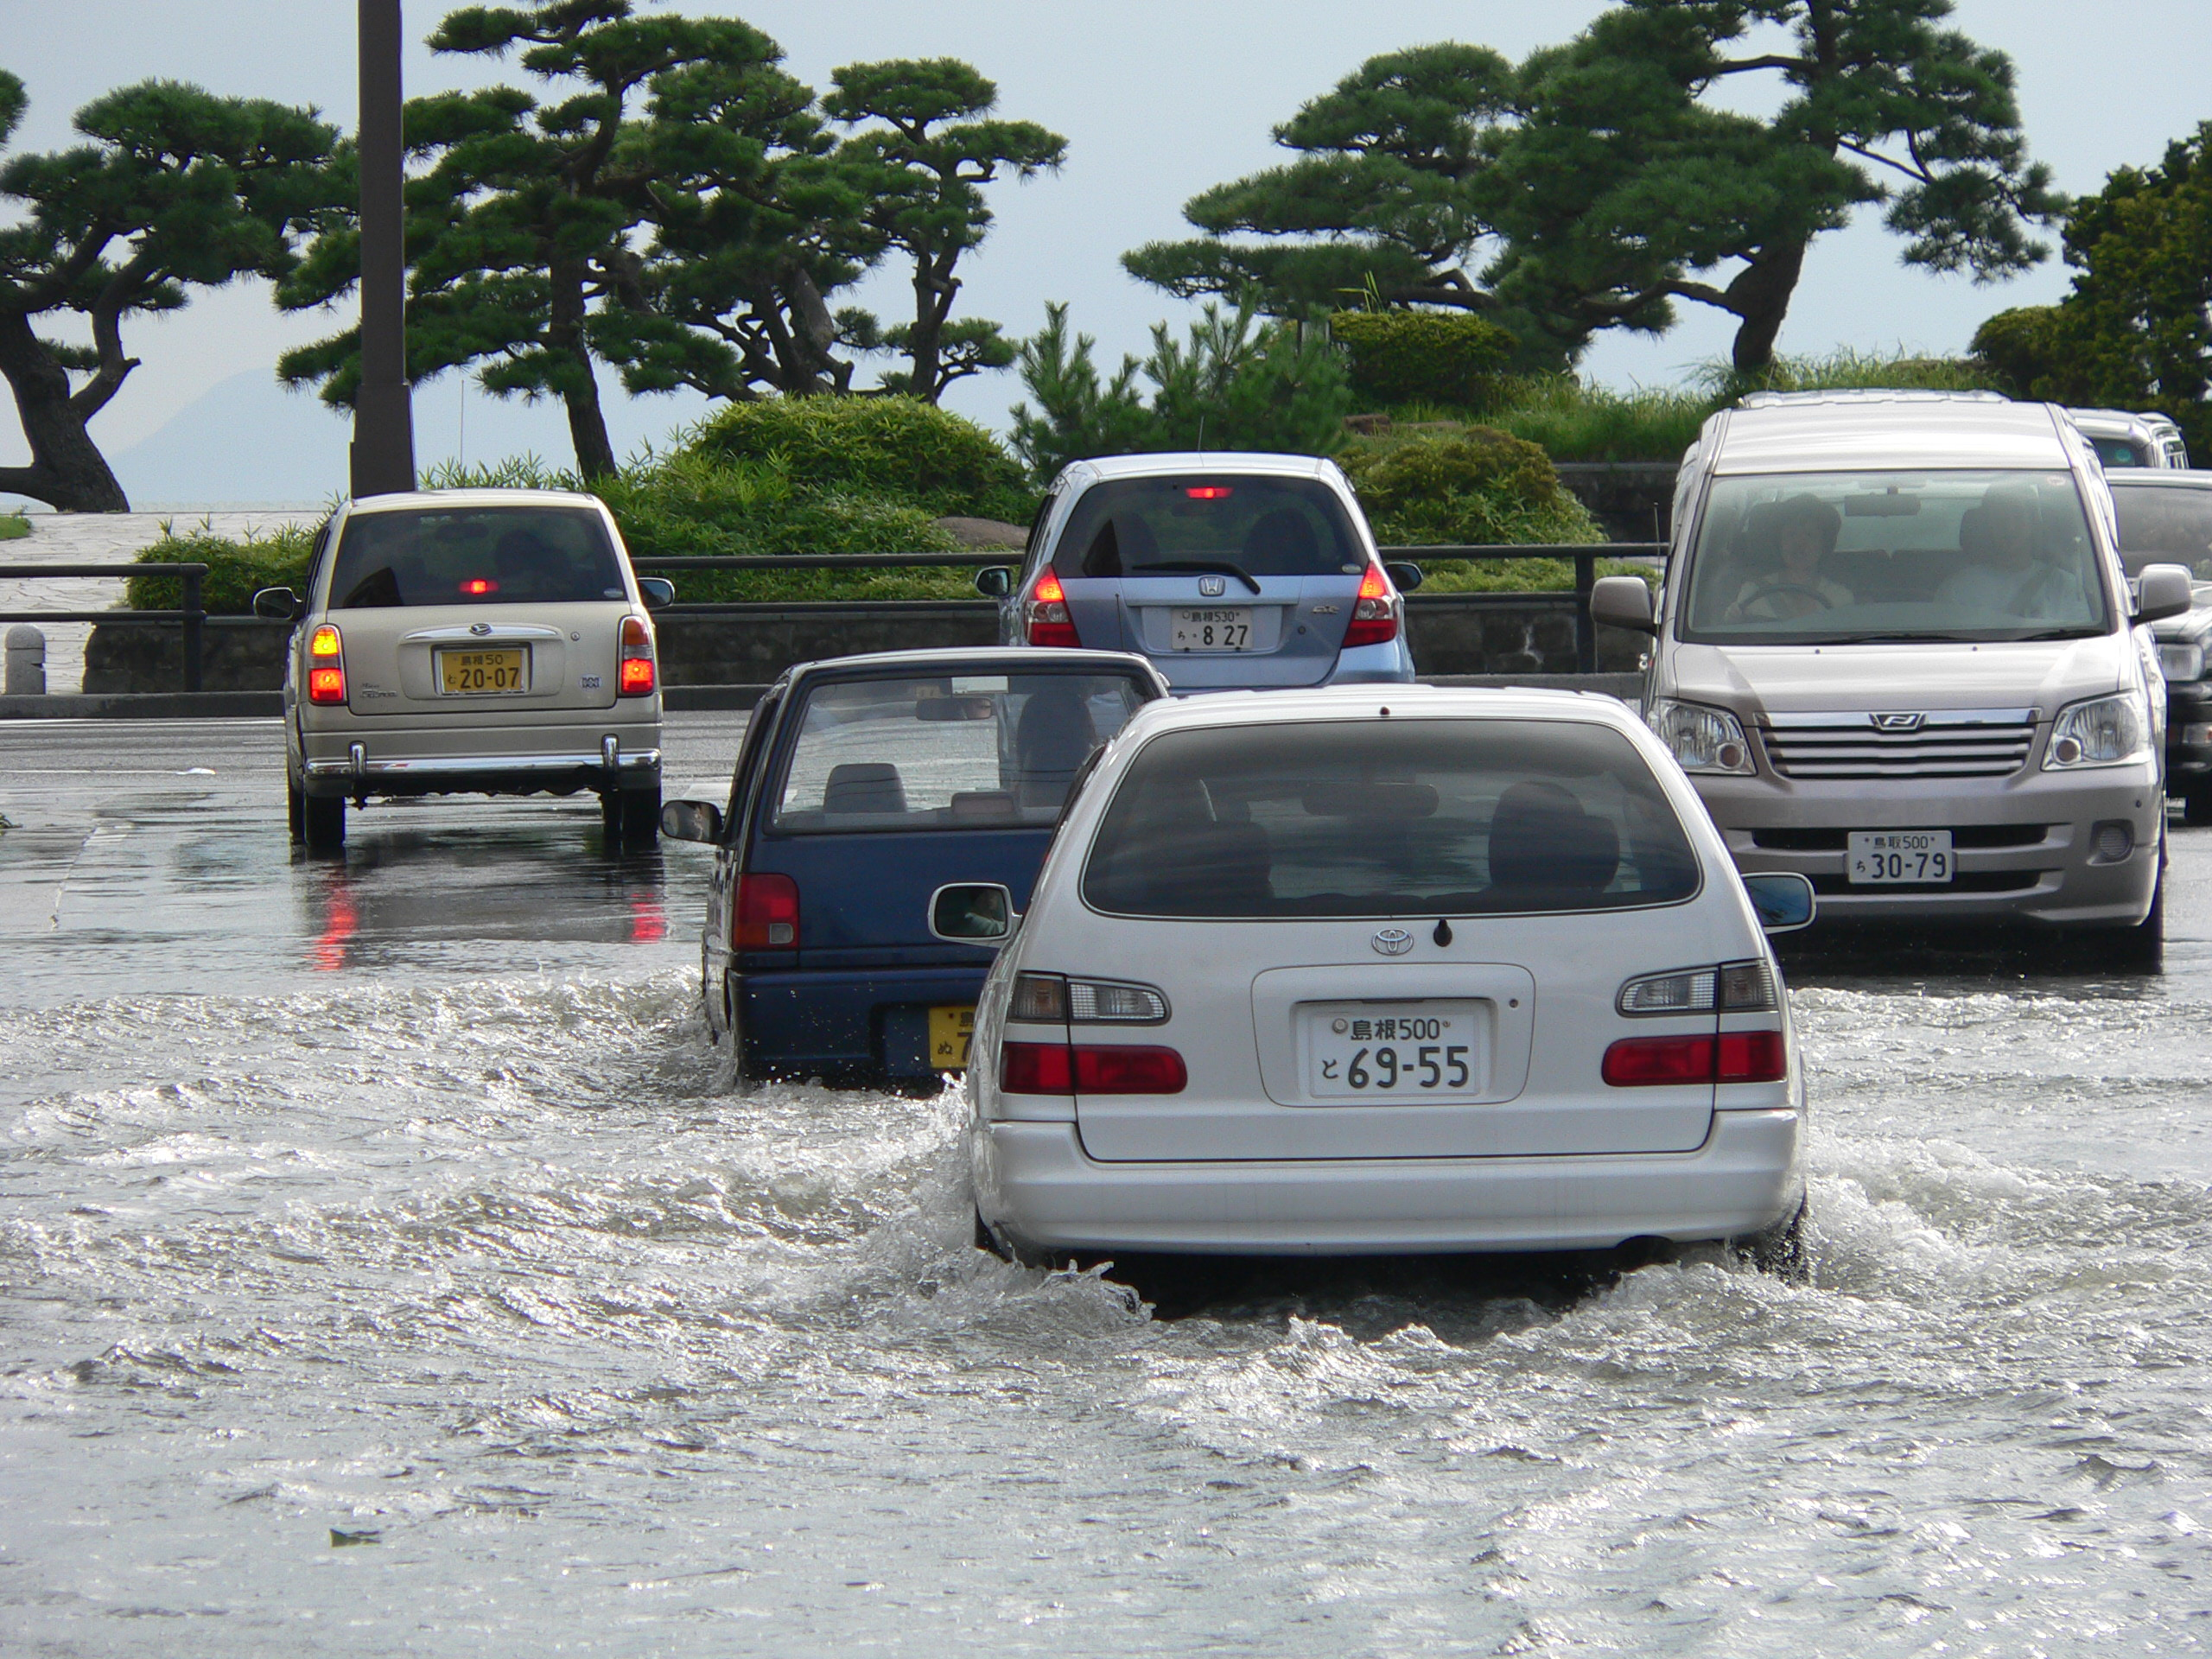 Cars driving on a flooded street in matsue, japan photo